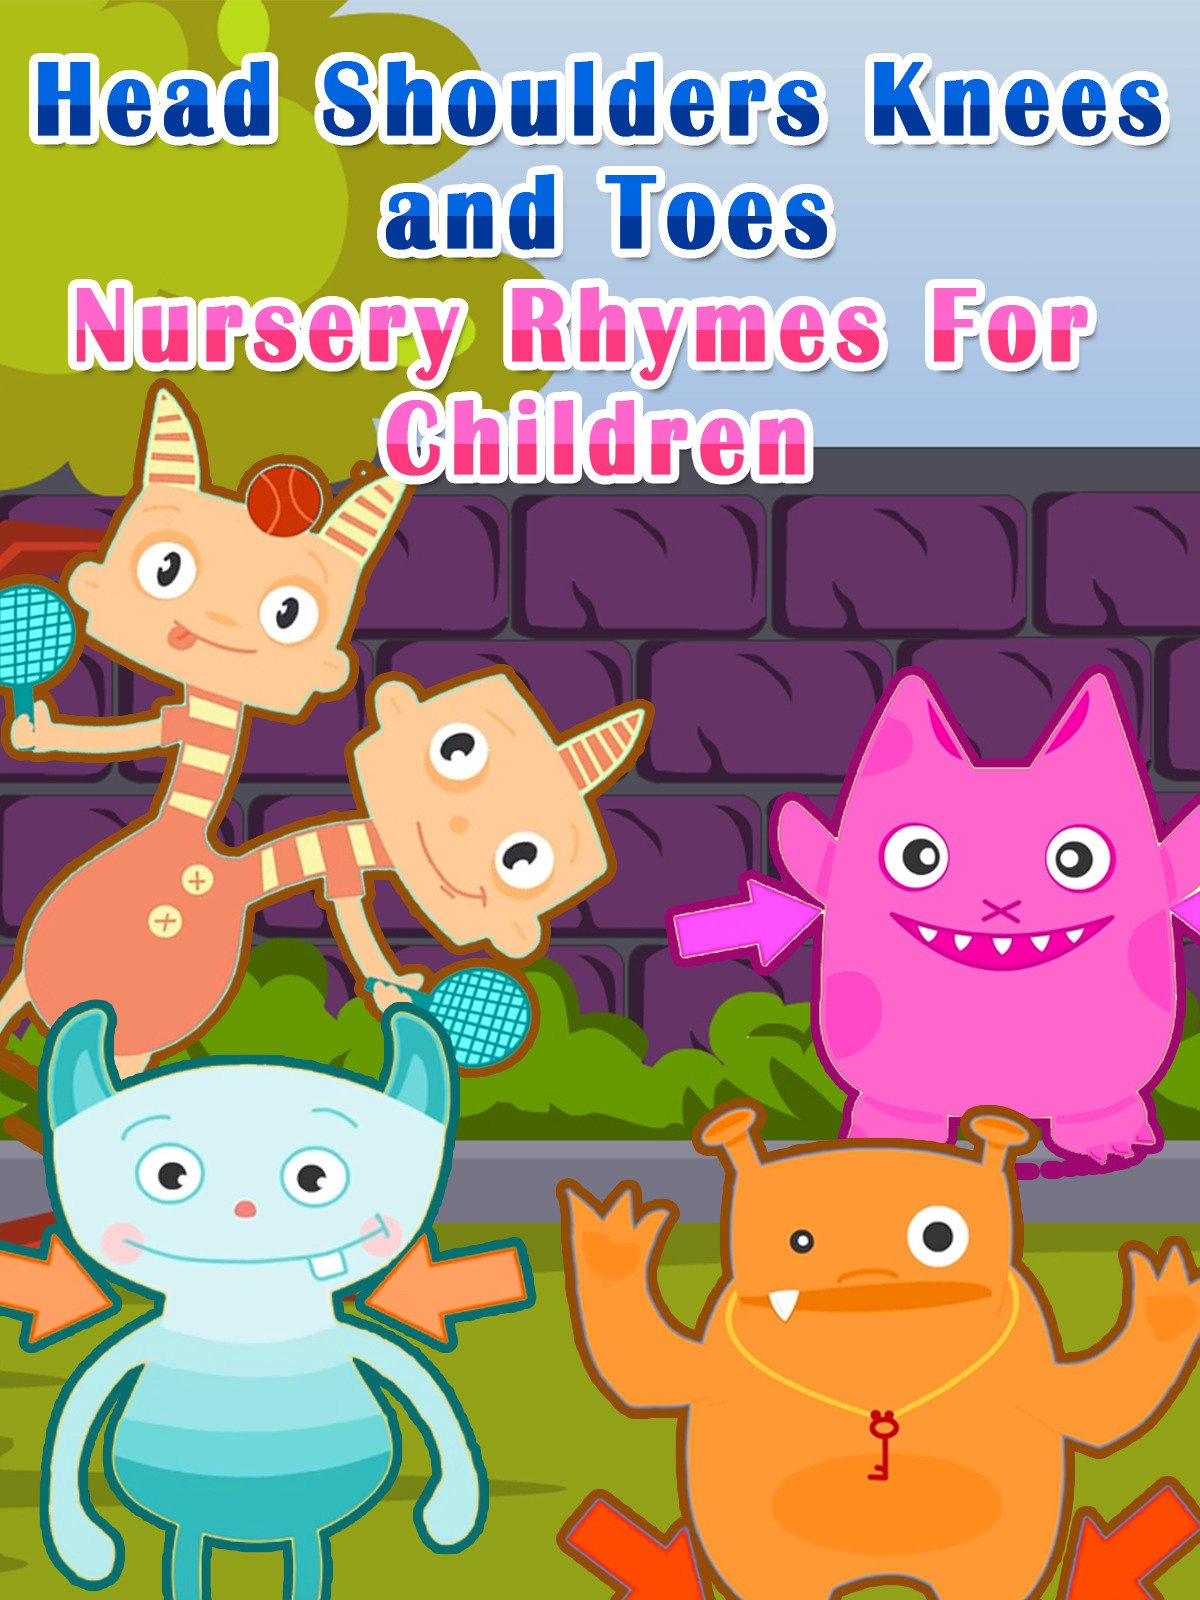 Head Shoulders Knees and Toes Nursery Rhymes For children